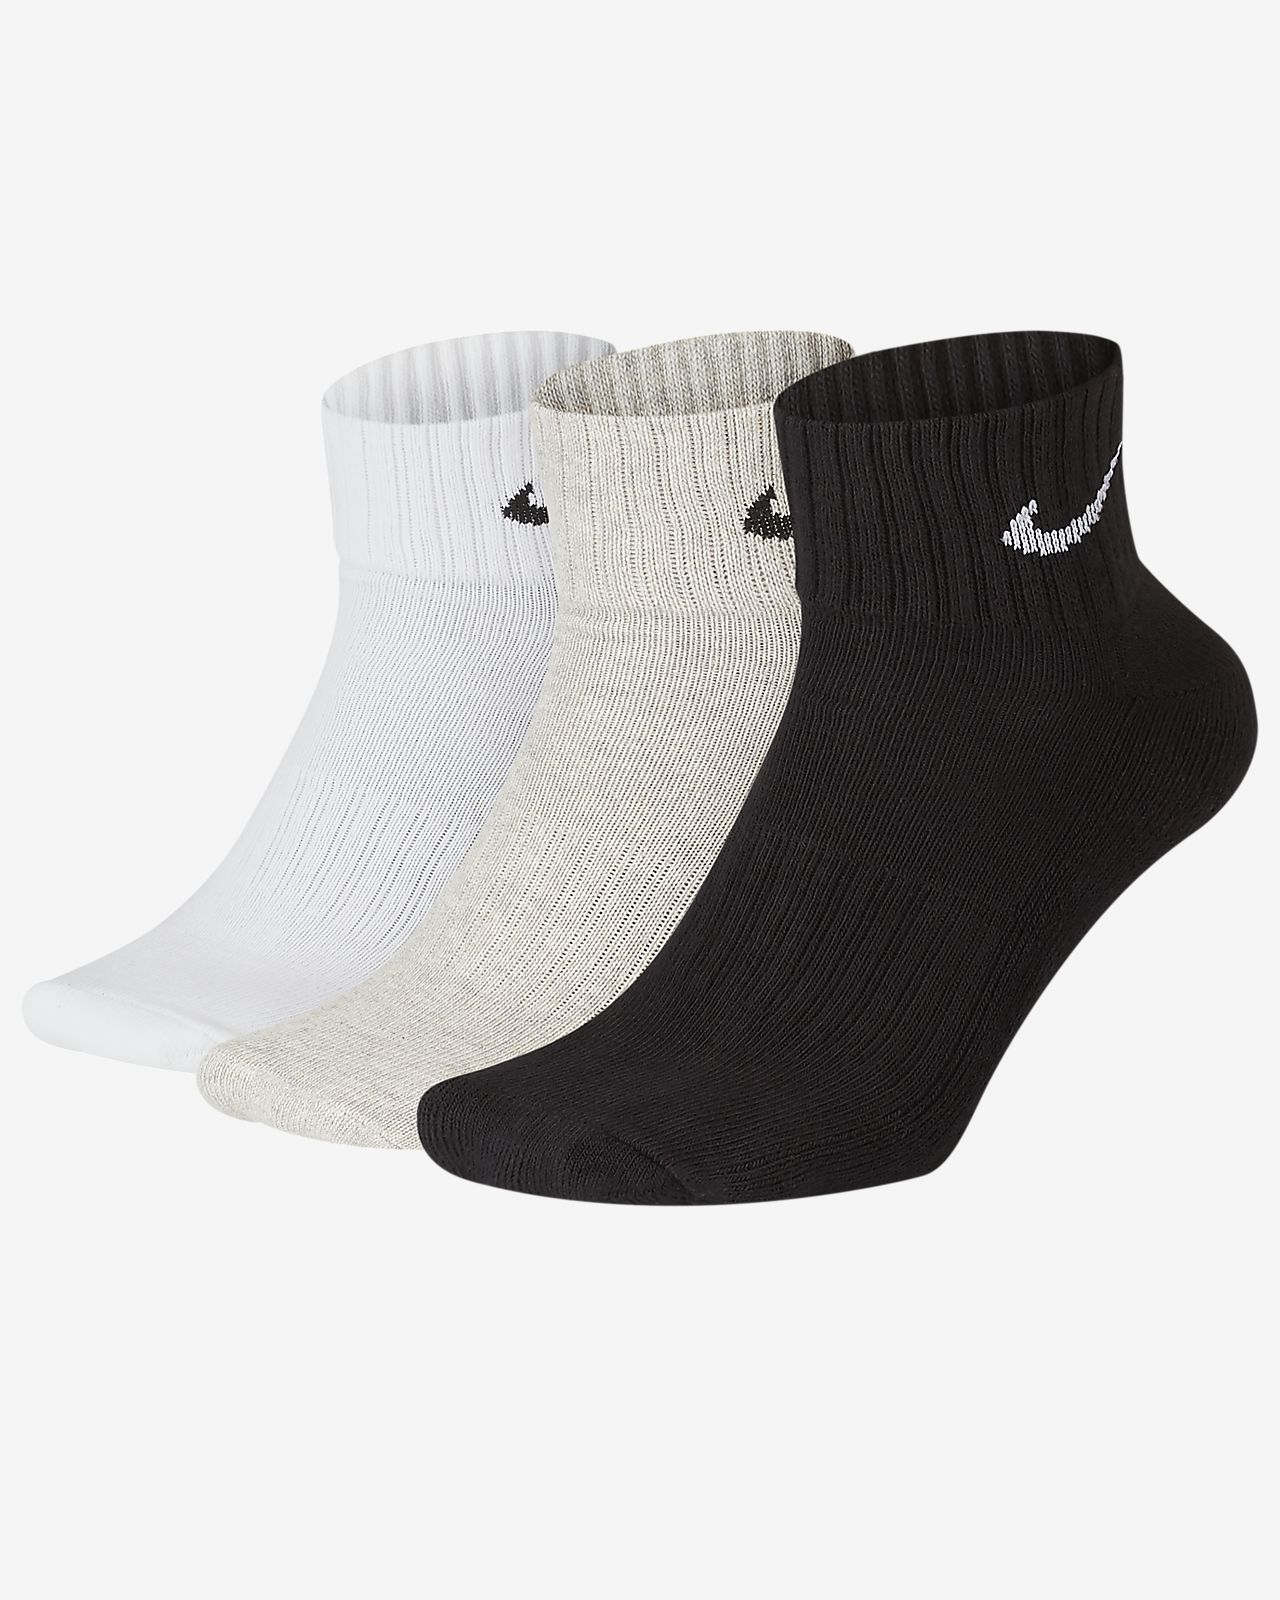 Nike Cushion Trainings-Knöchelsocken (3 Paar)